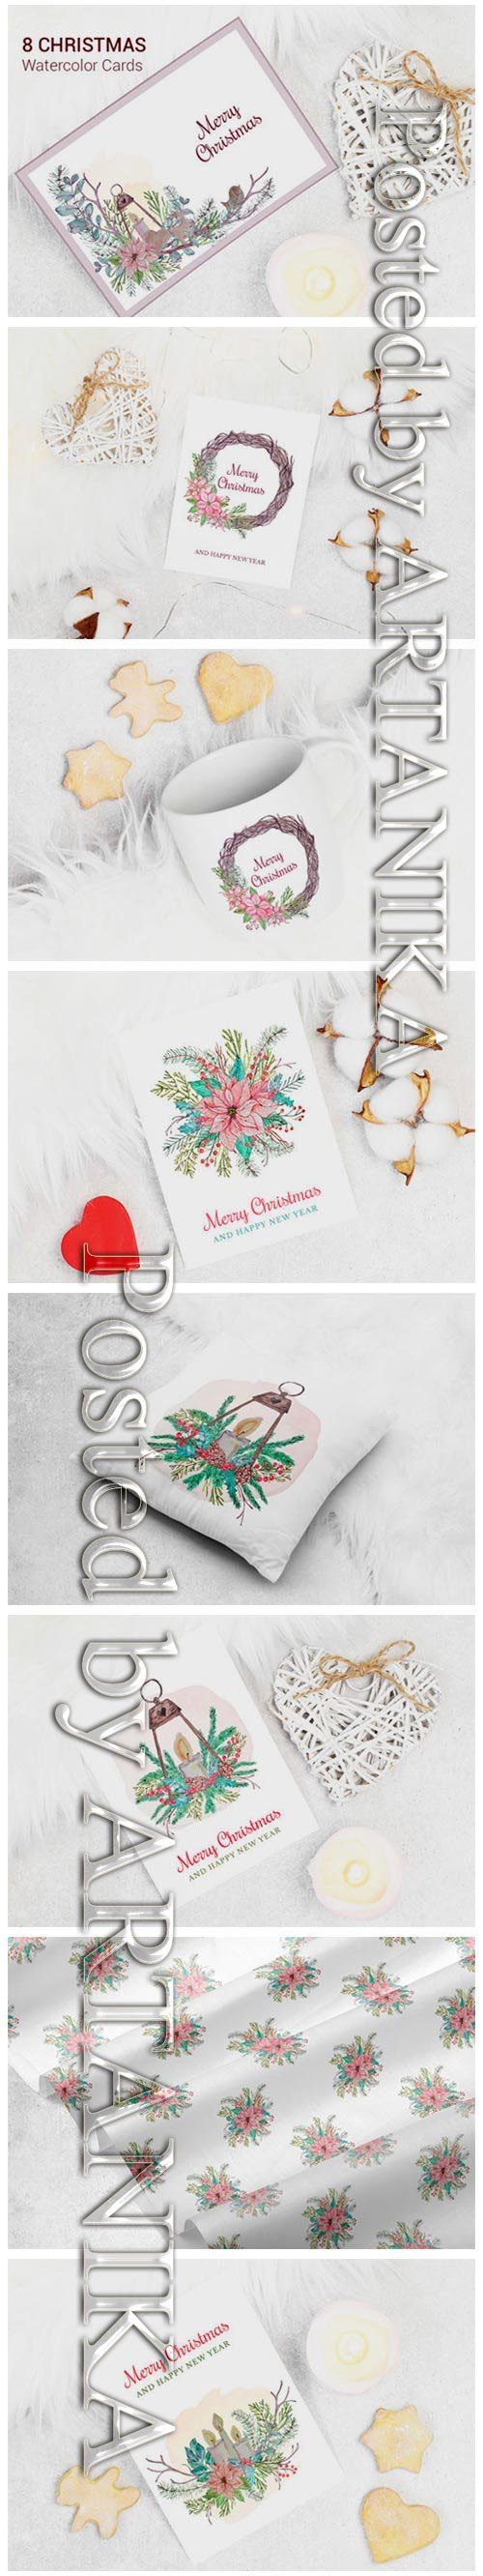 Merry Christmas Watercolor Greeting Card 1996765